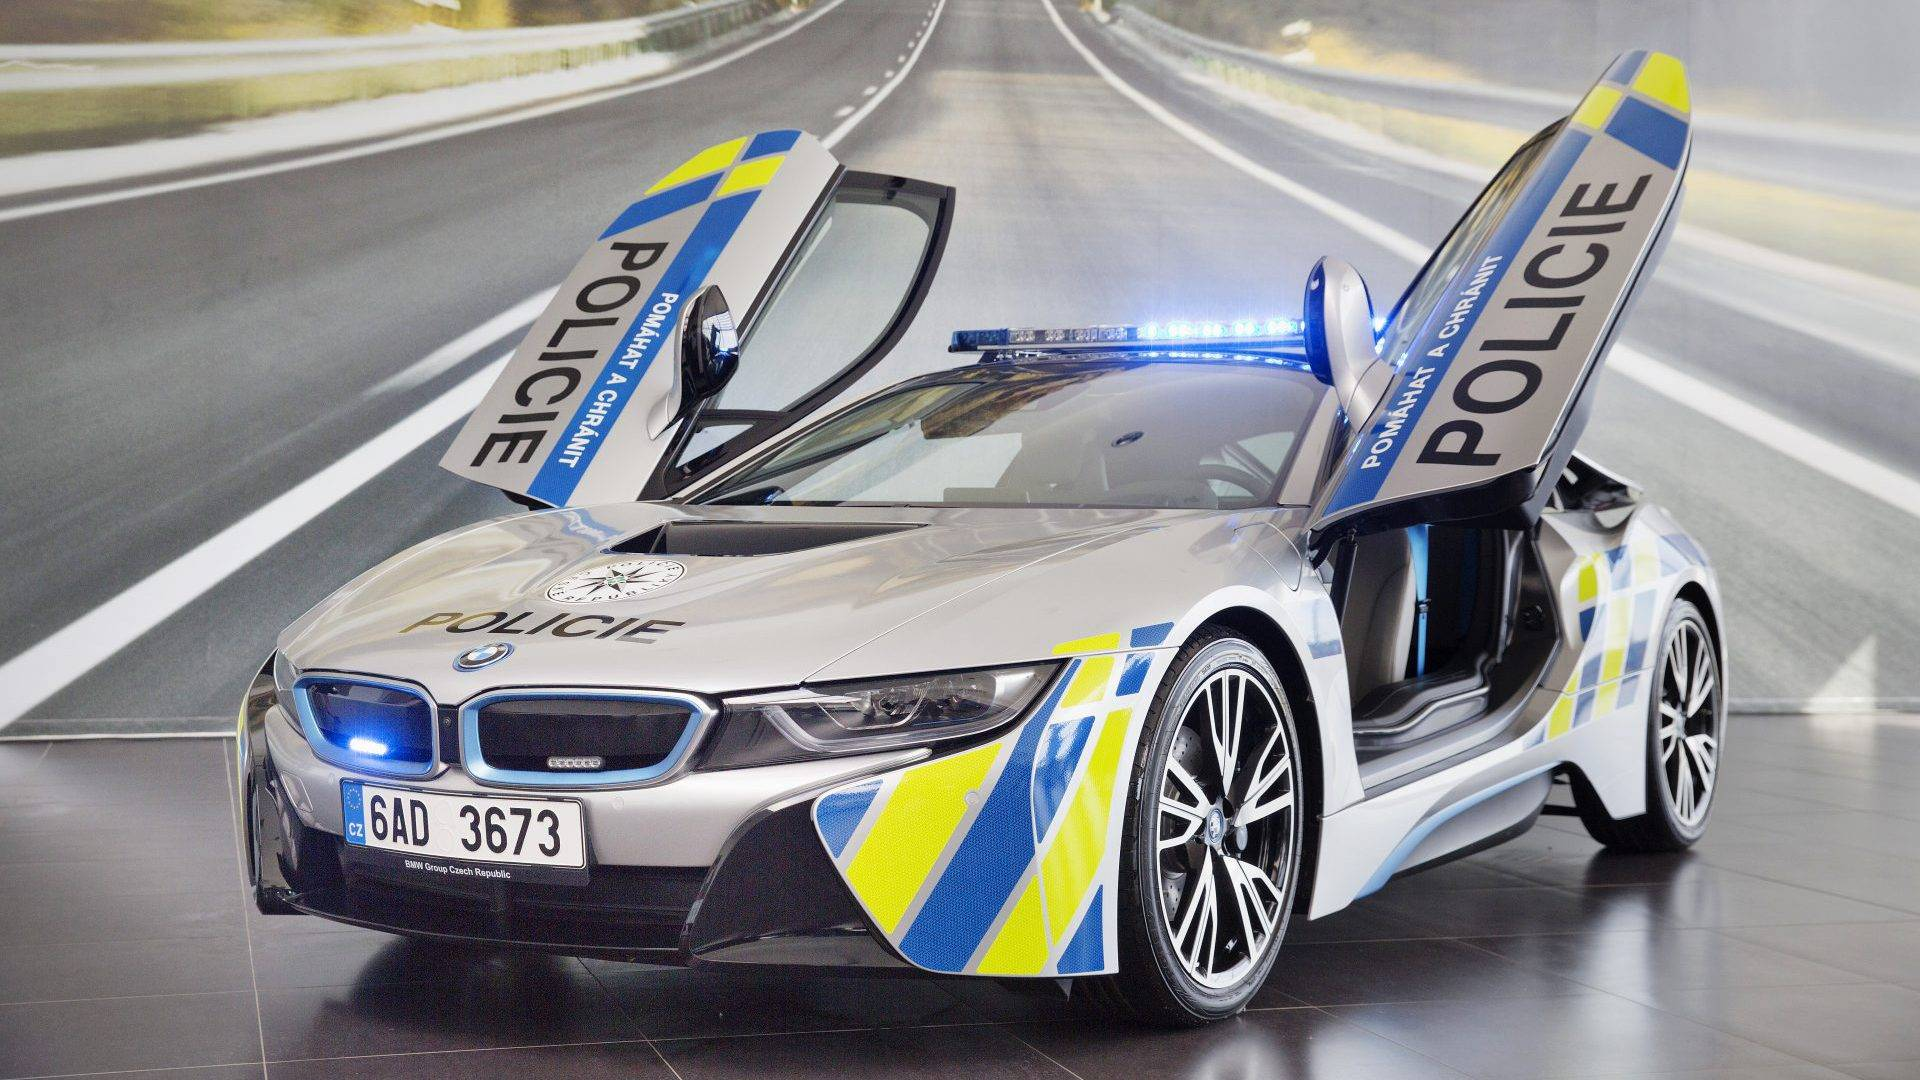 Czech Bmw I8 Police Car Crashes Due To A Medical Emergency